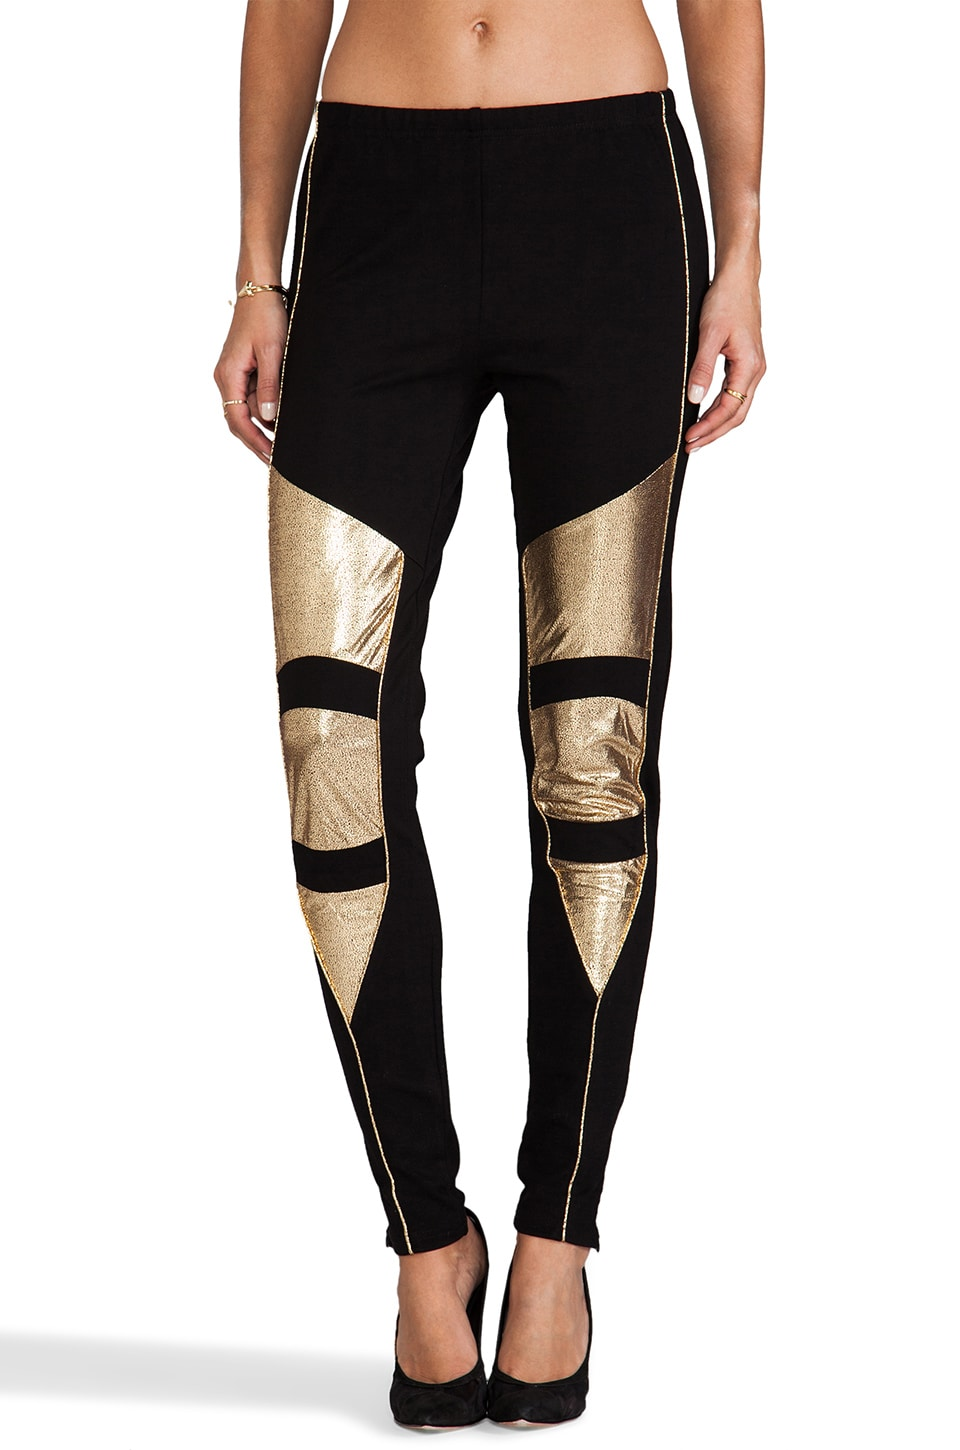 MINKPINK Struck Oil Legging in Black/Gold